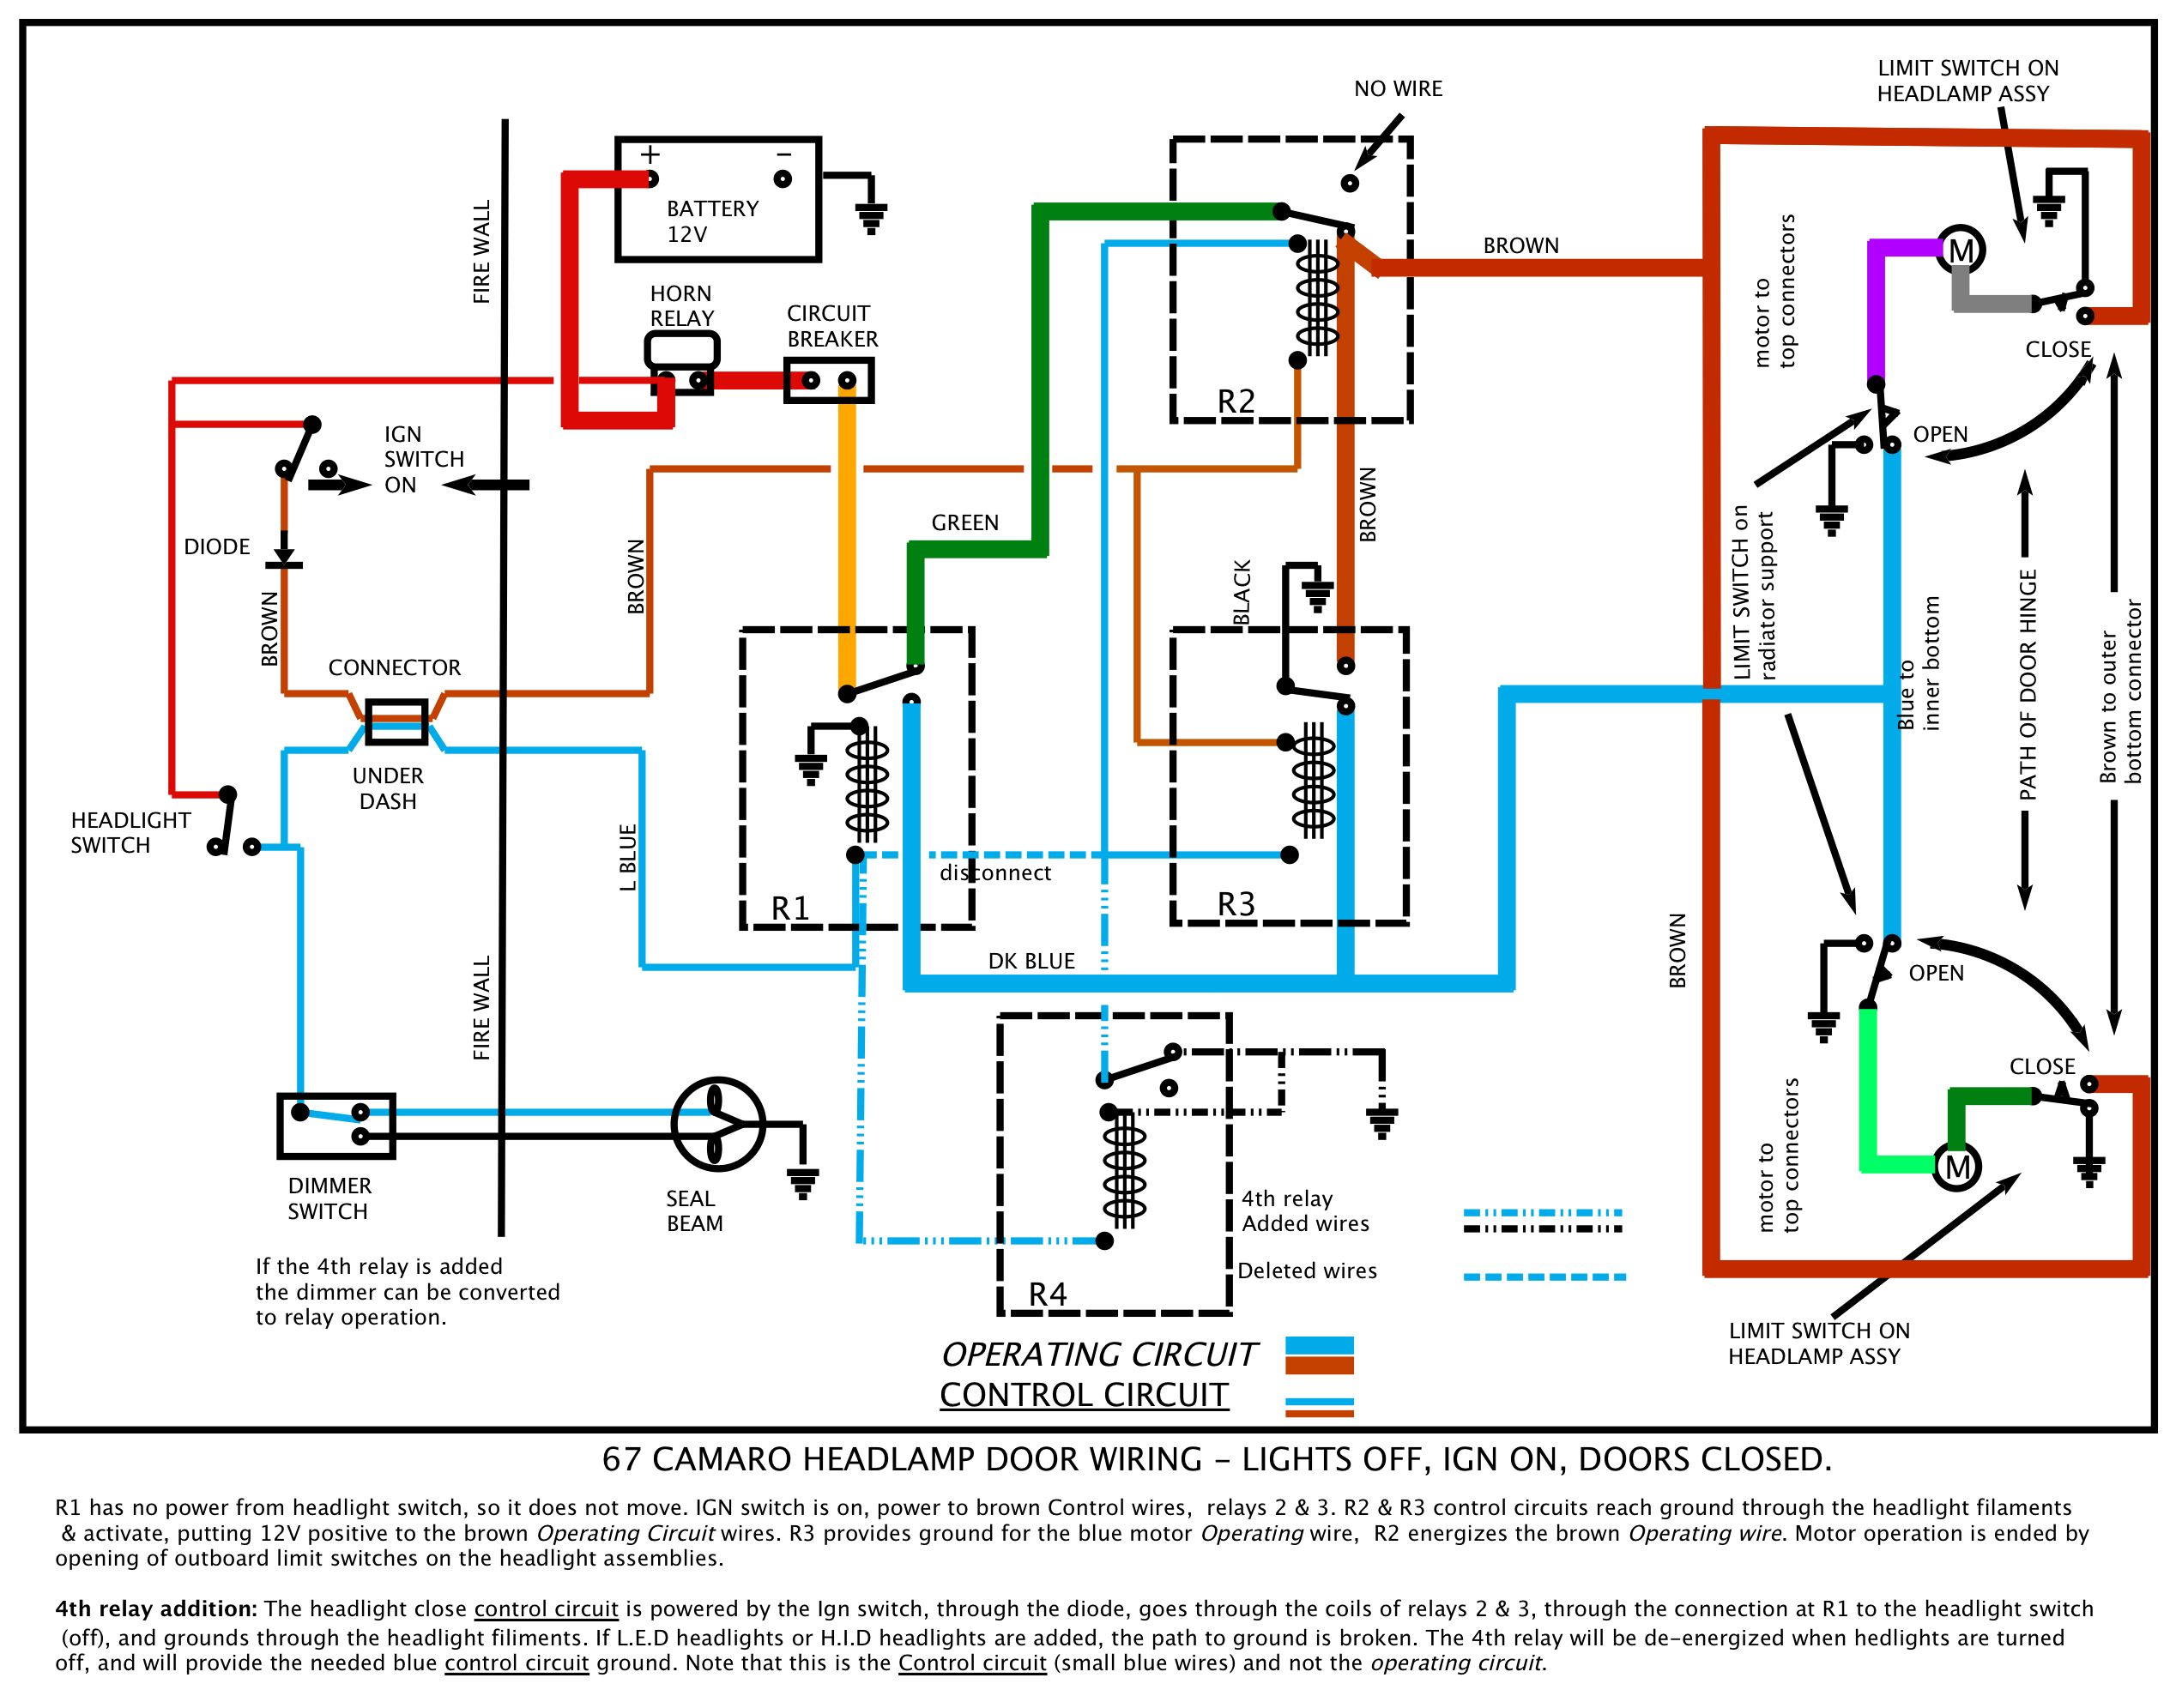 1967 camaro painless wiring diagram Images Gallery